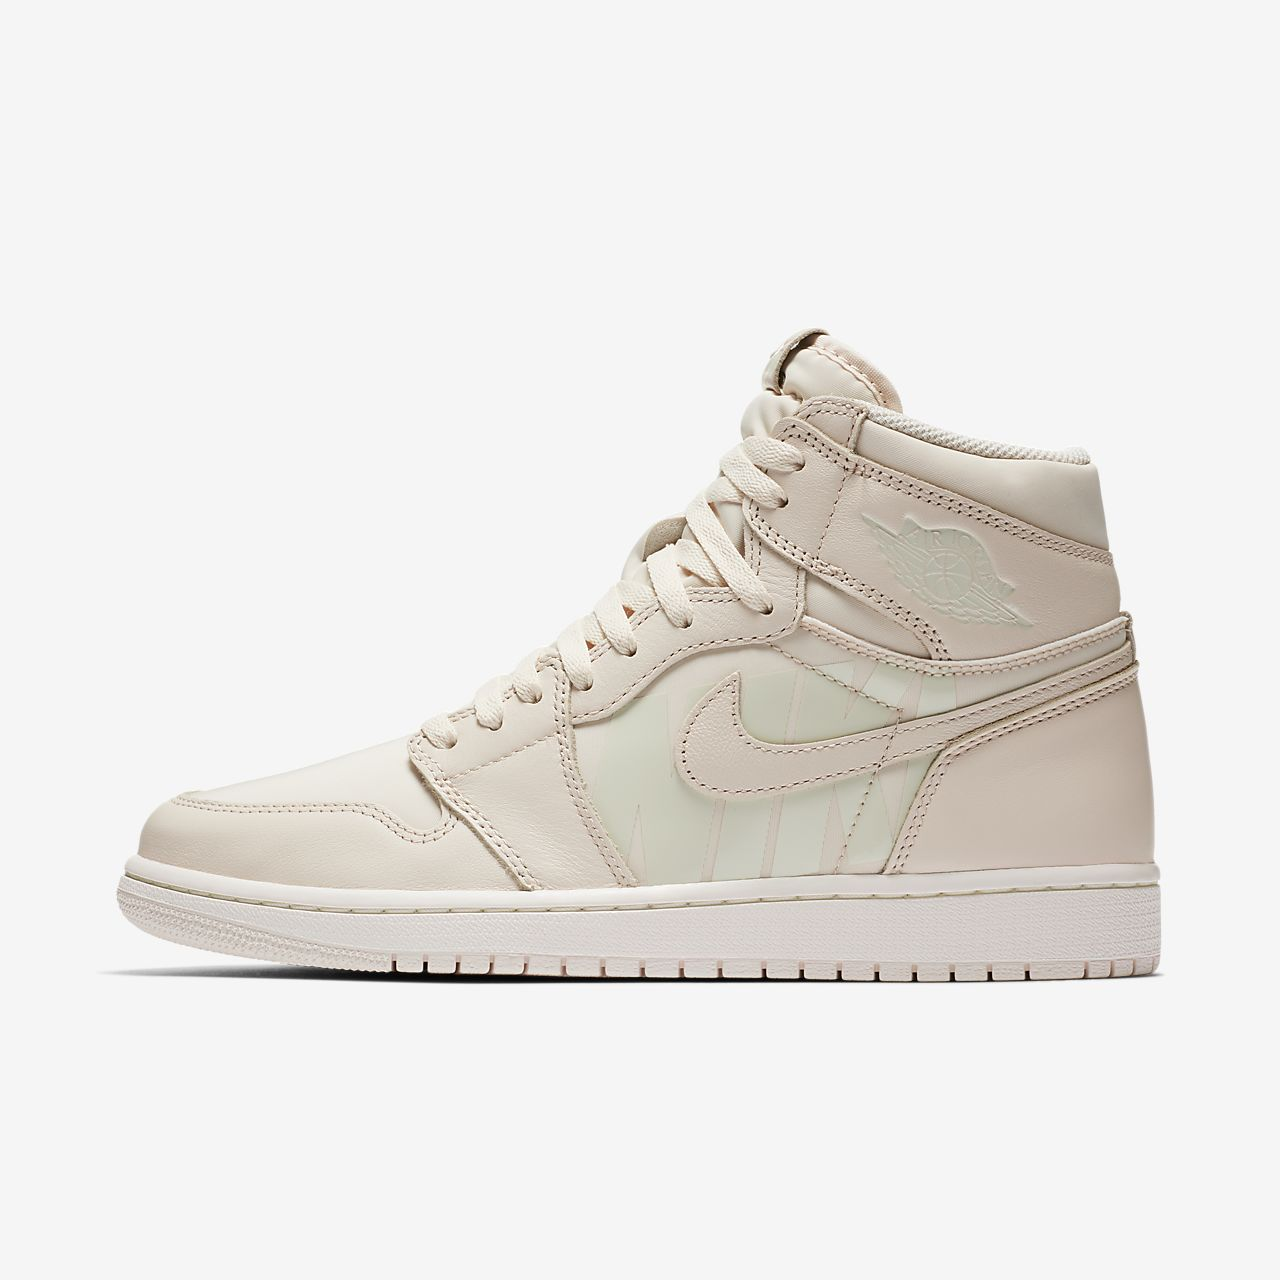 2dd4d3128d49 Air Jordan 1 Retro High OG Shoe. Nike.com